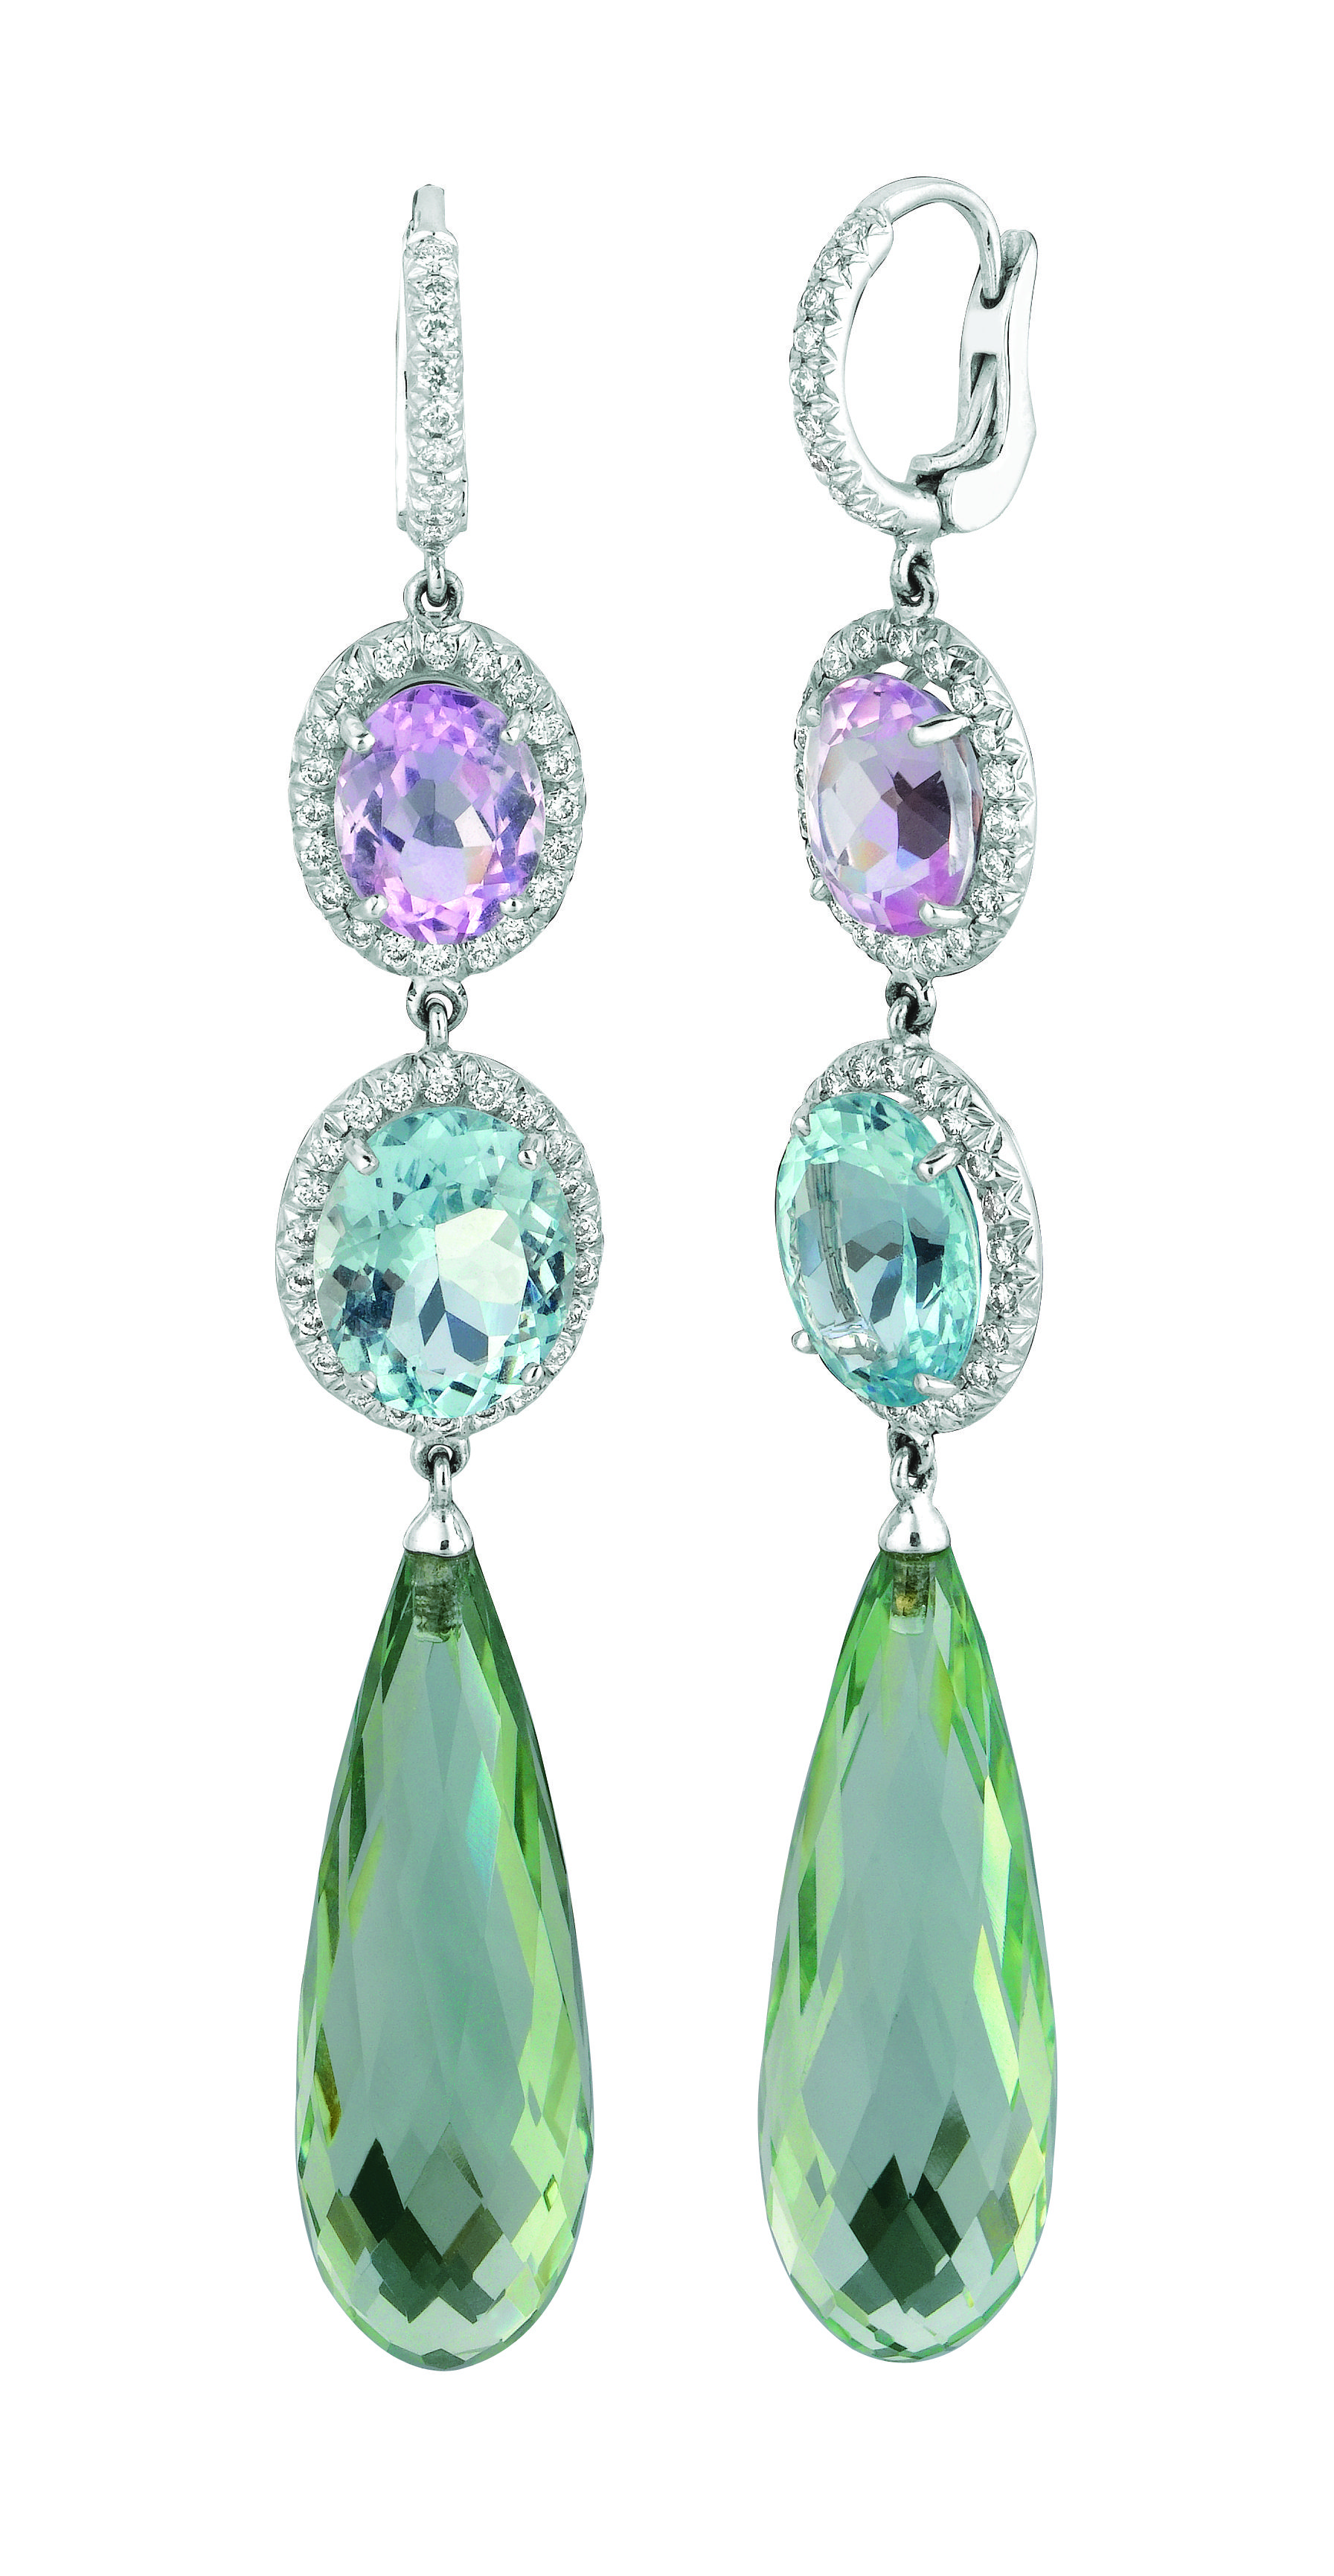 and en diamond bukowskis bukobject earrings pair cut brilliant lots fullsize kunzite of a